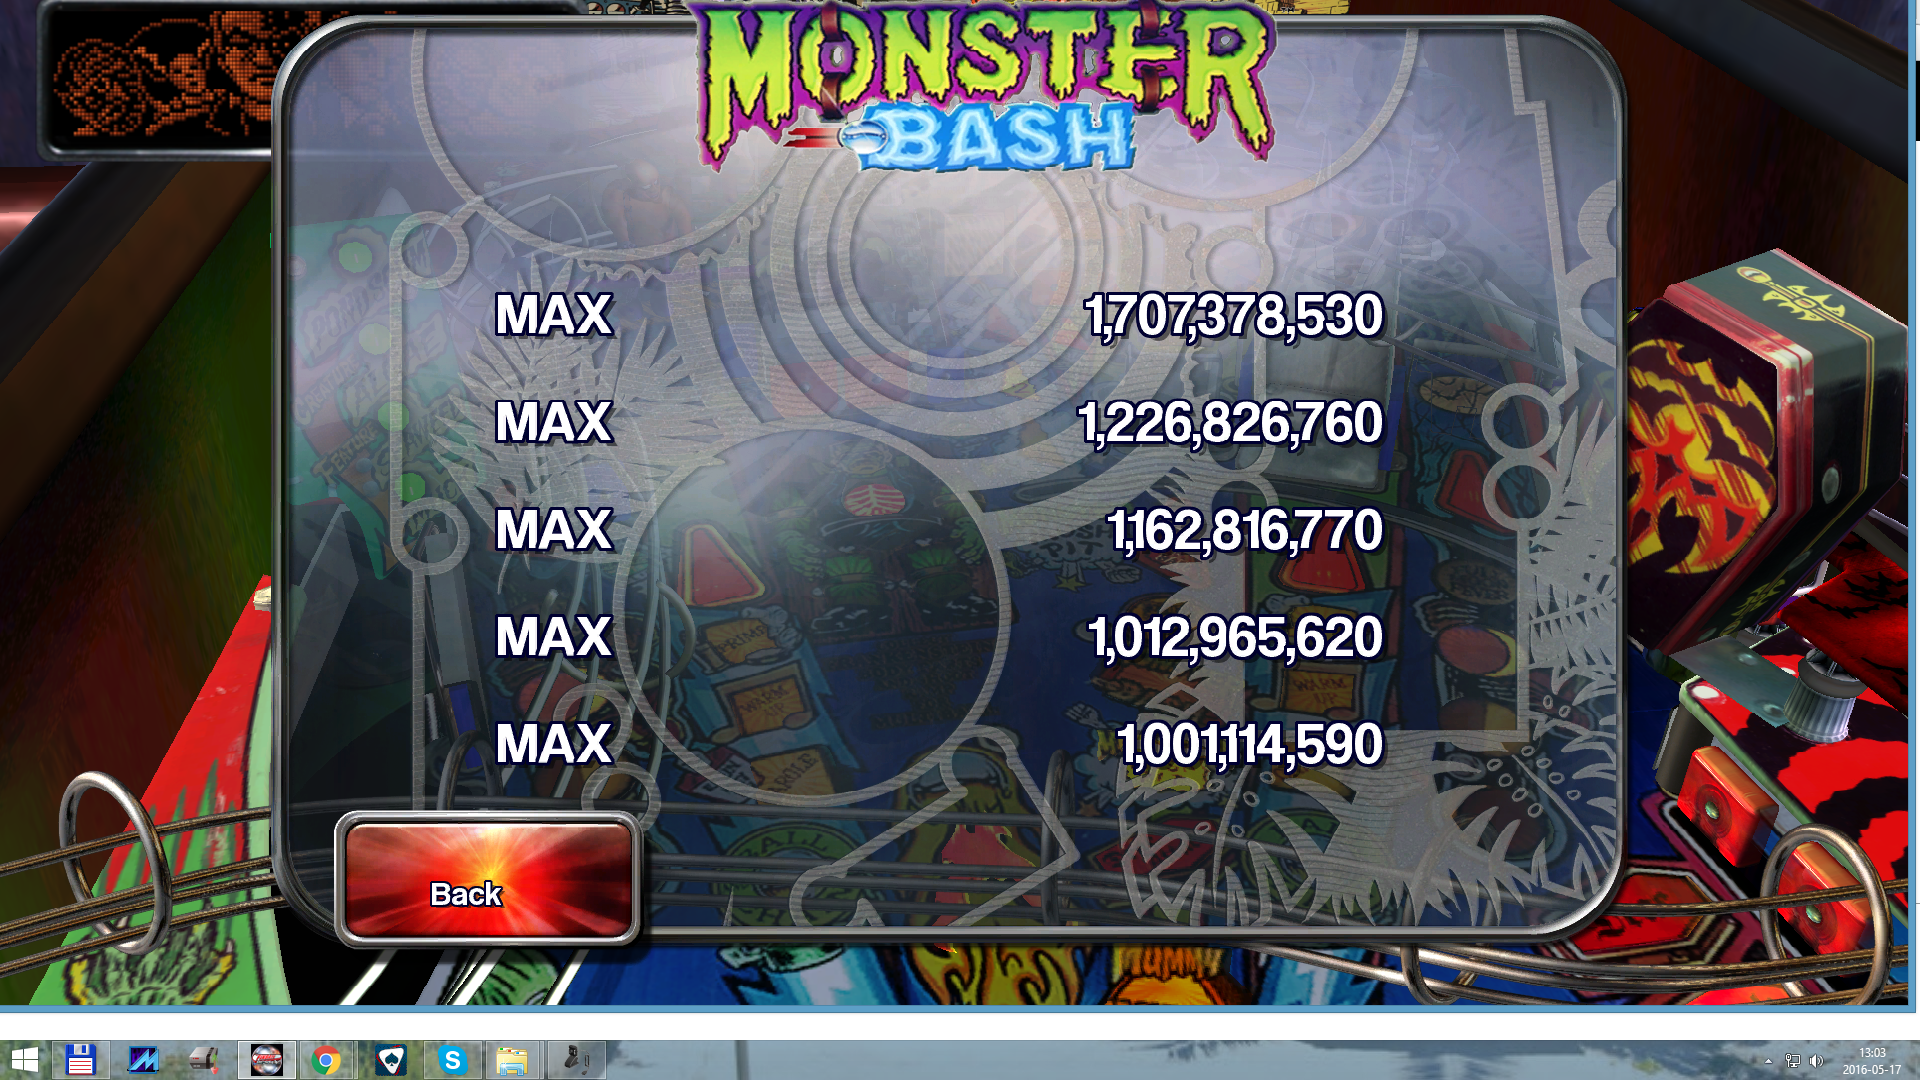 Pinball Arcade: Monster Bash 1,707,378,530 points